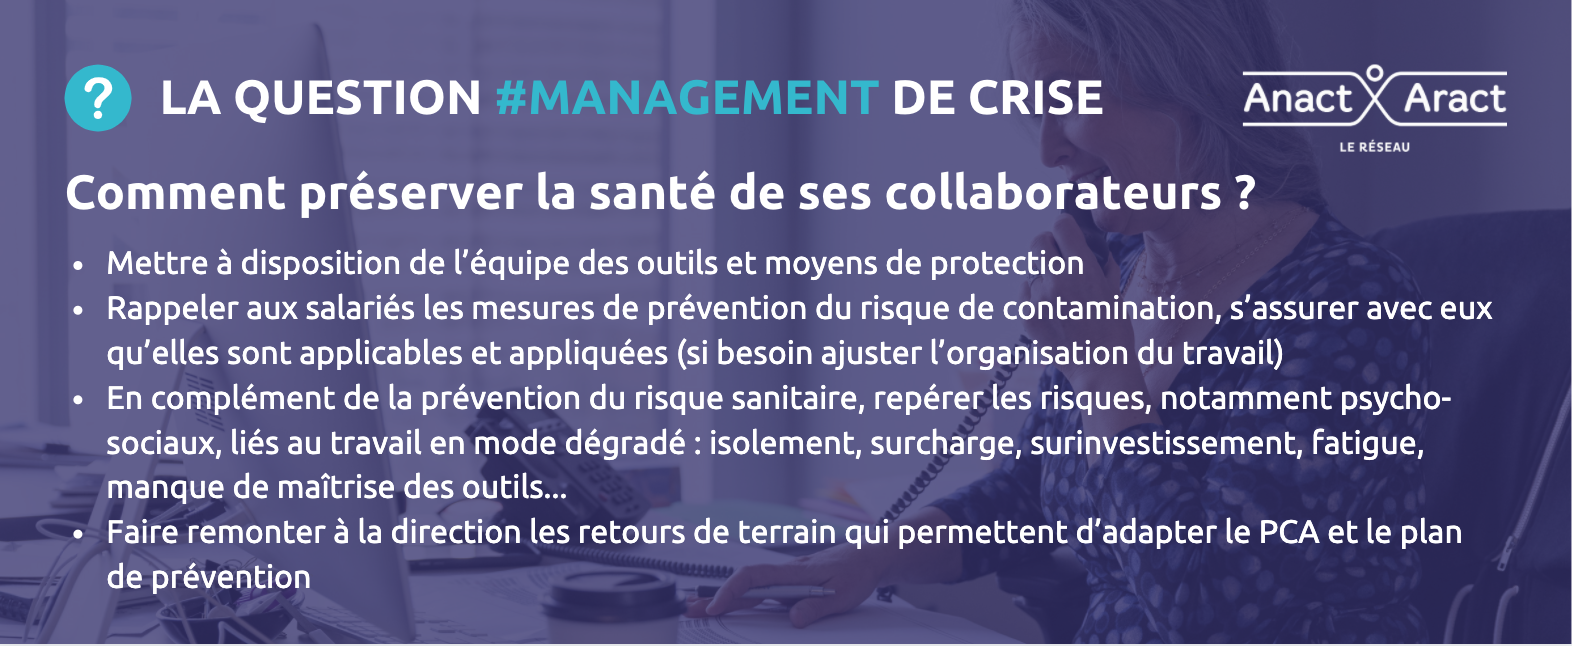 question-mgt-crise-1